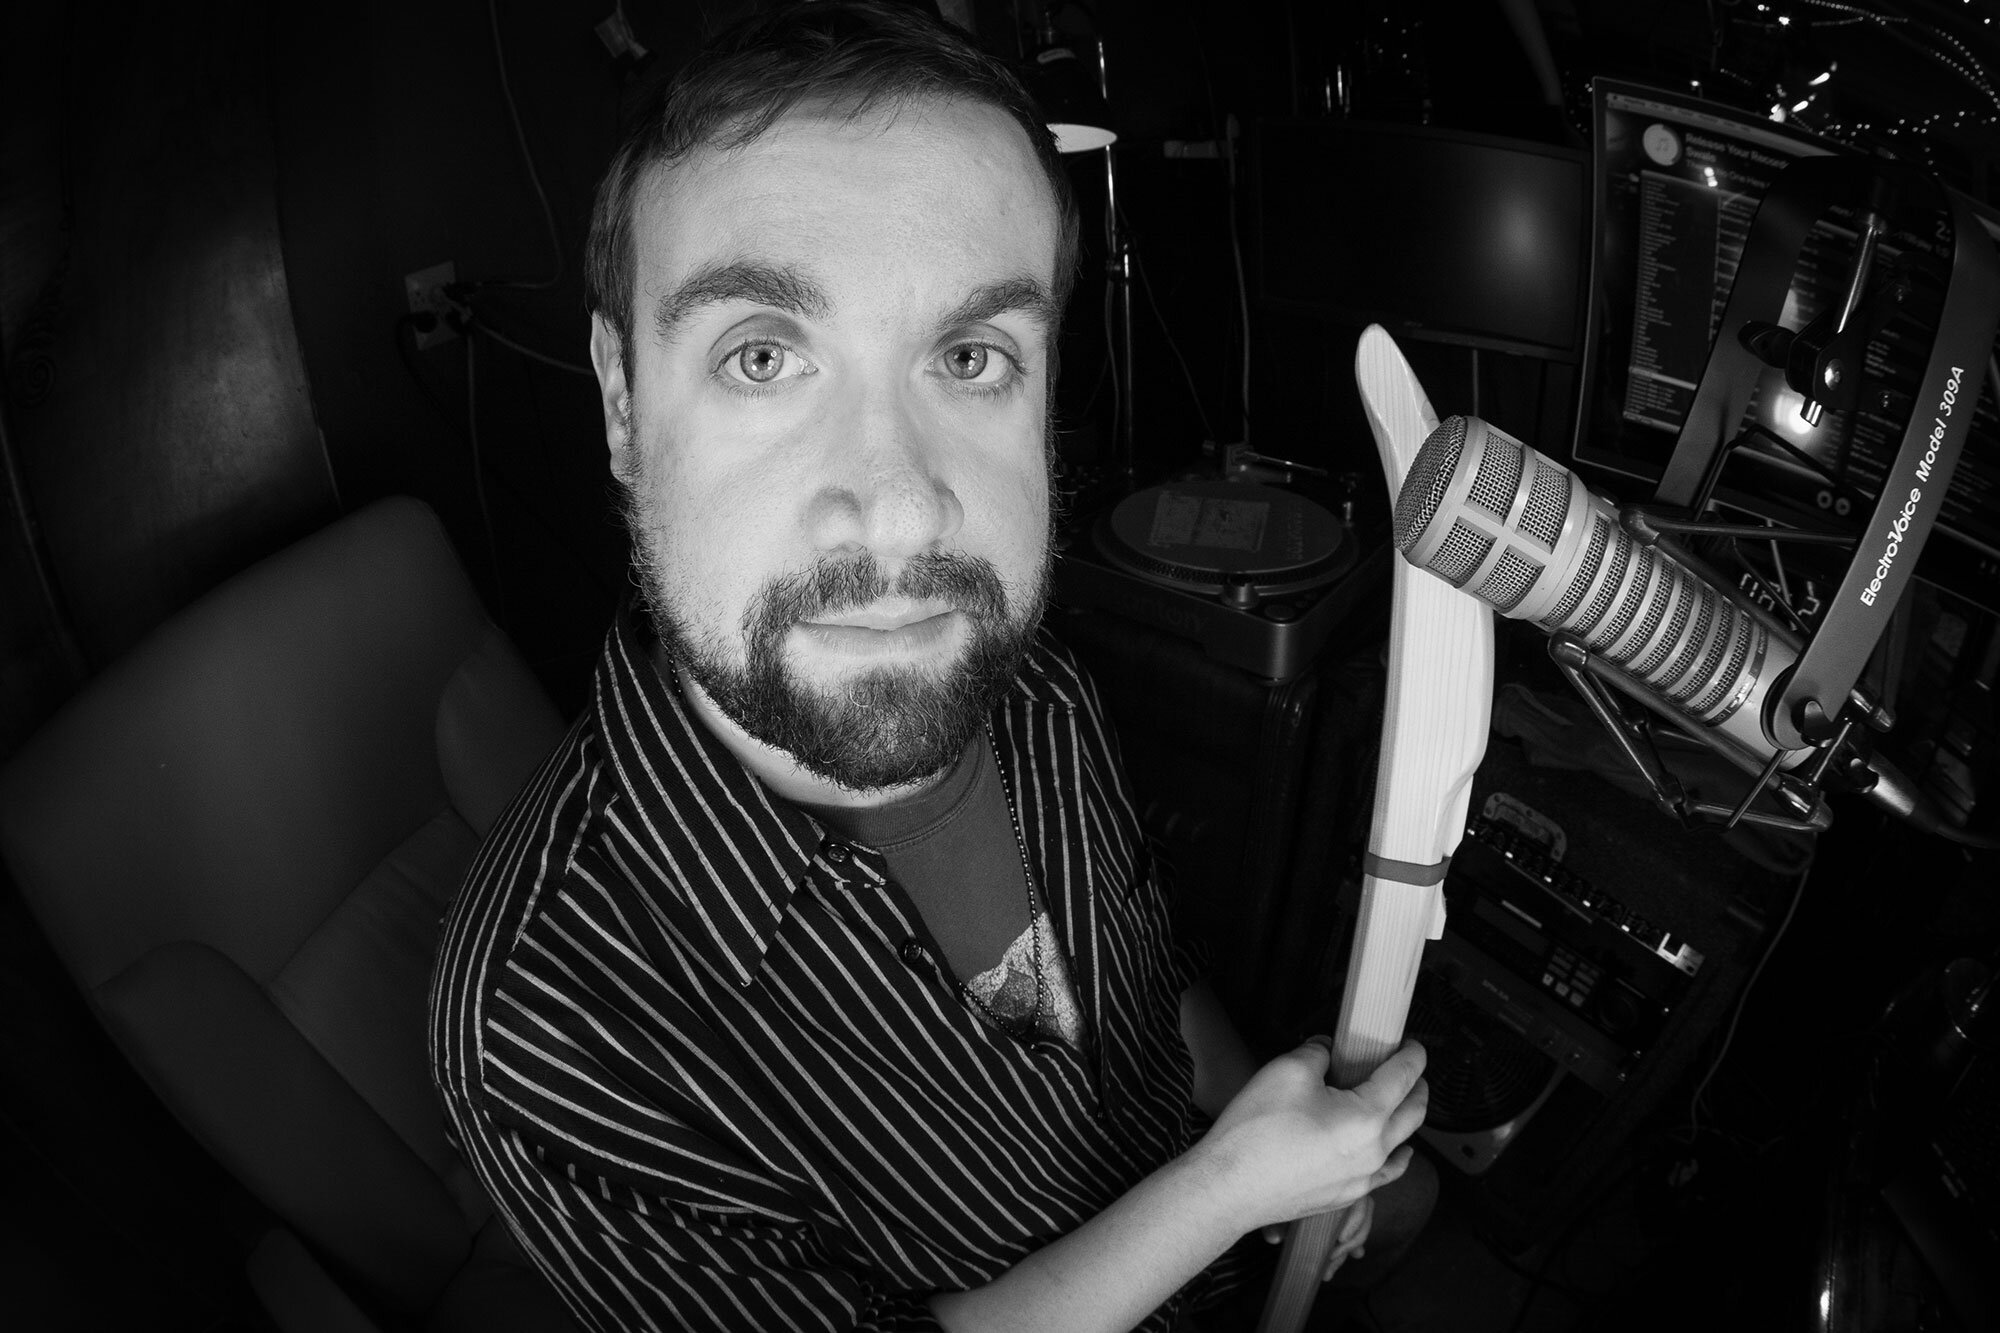 12pm-2pmFlute Fest - Edward BurkeA mix of world, Irish/Celtic, Jazz, Rock, and other genres. If it's got a flute in it, I'll probably play it!